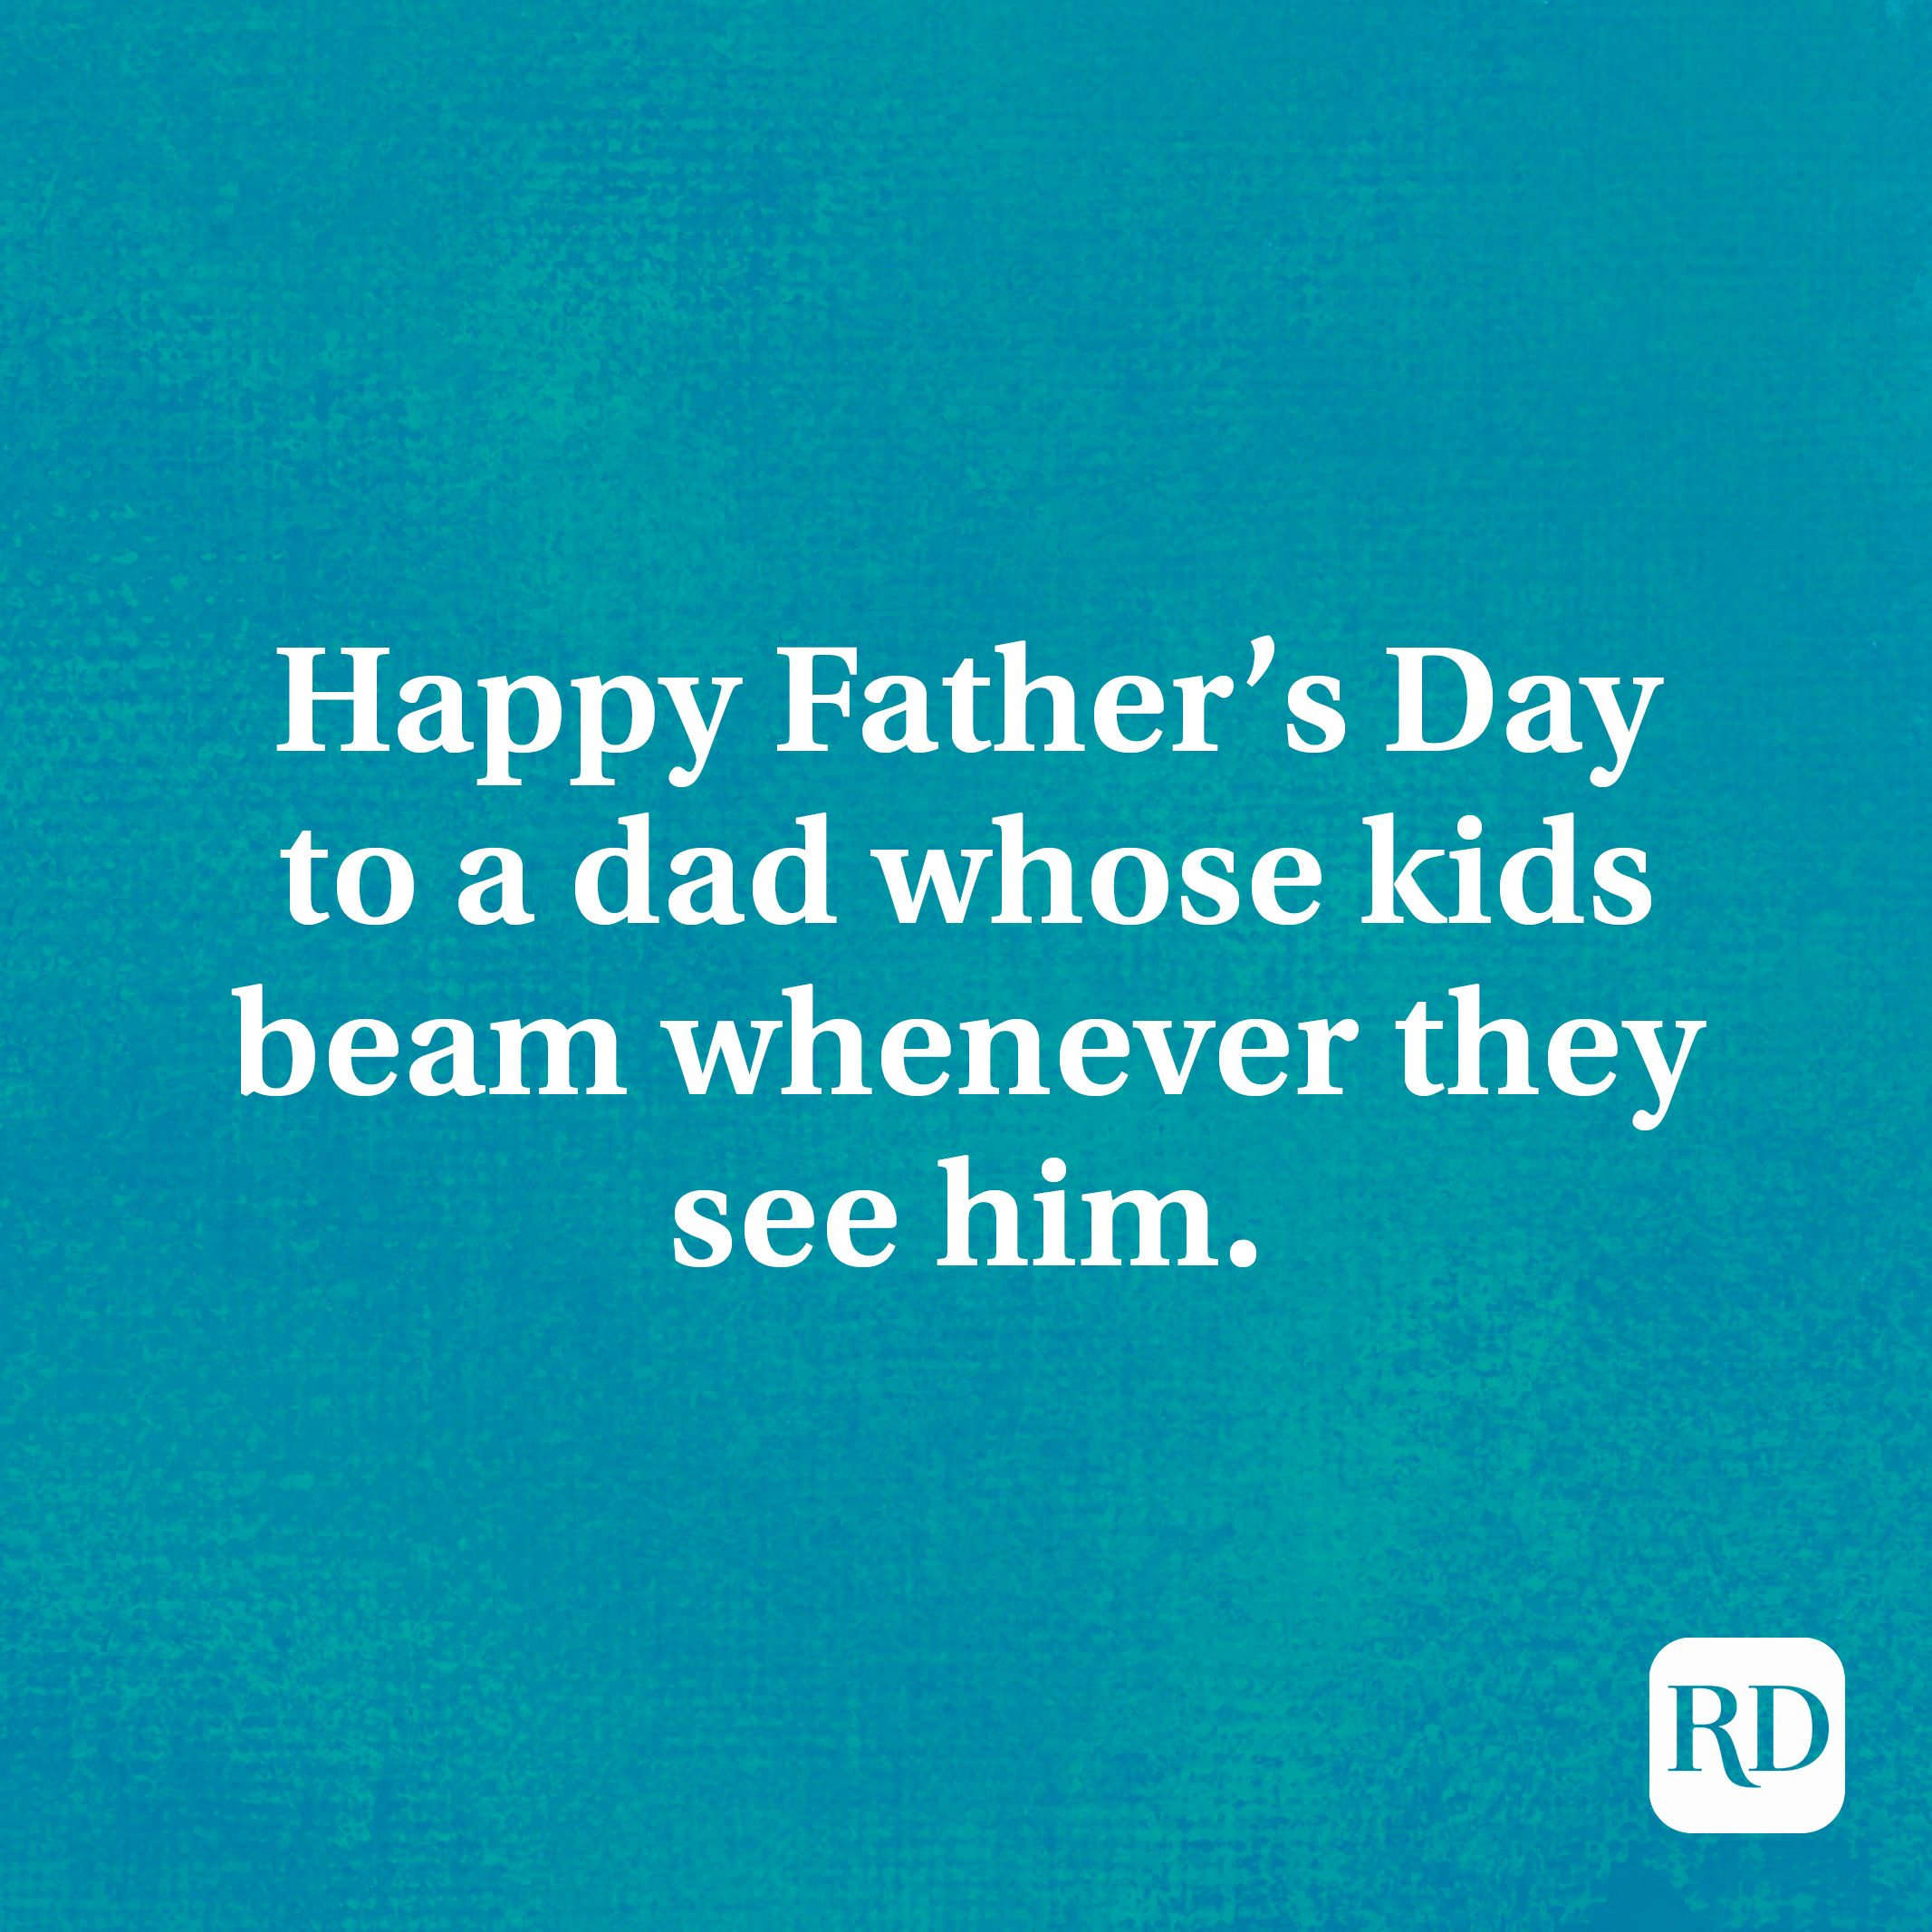 Happy Father's Day to a dad whose kids beam whenever they see him.